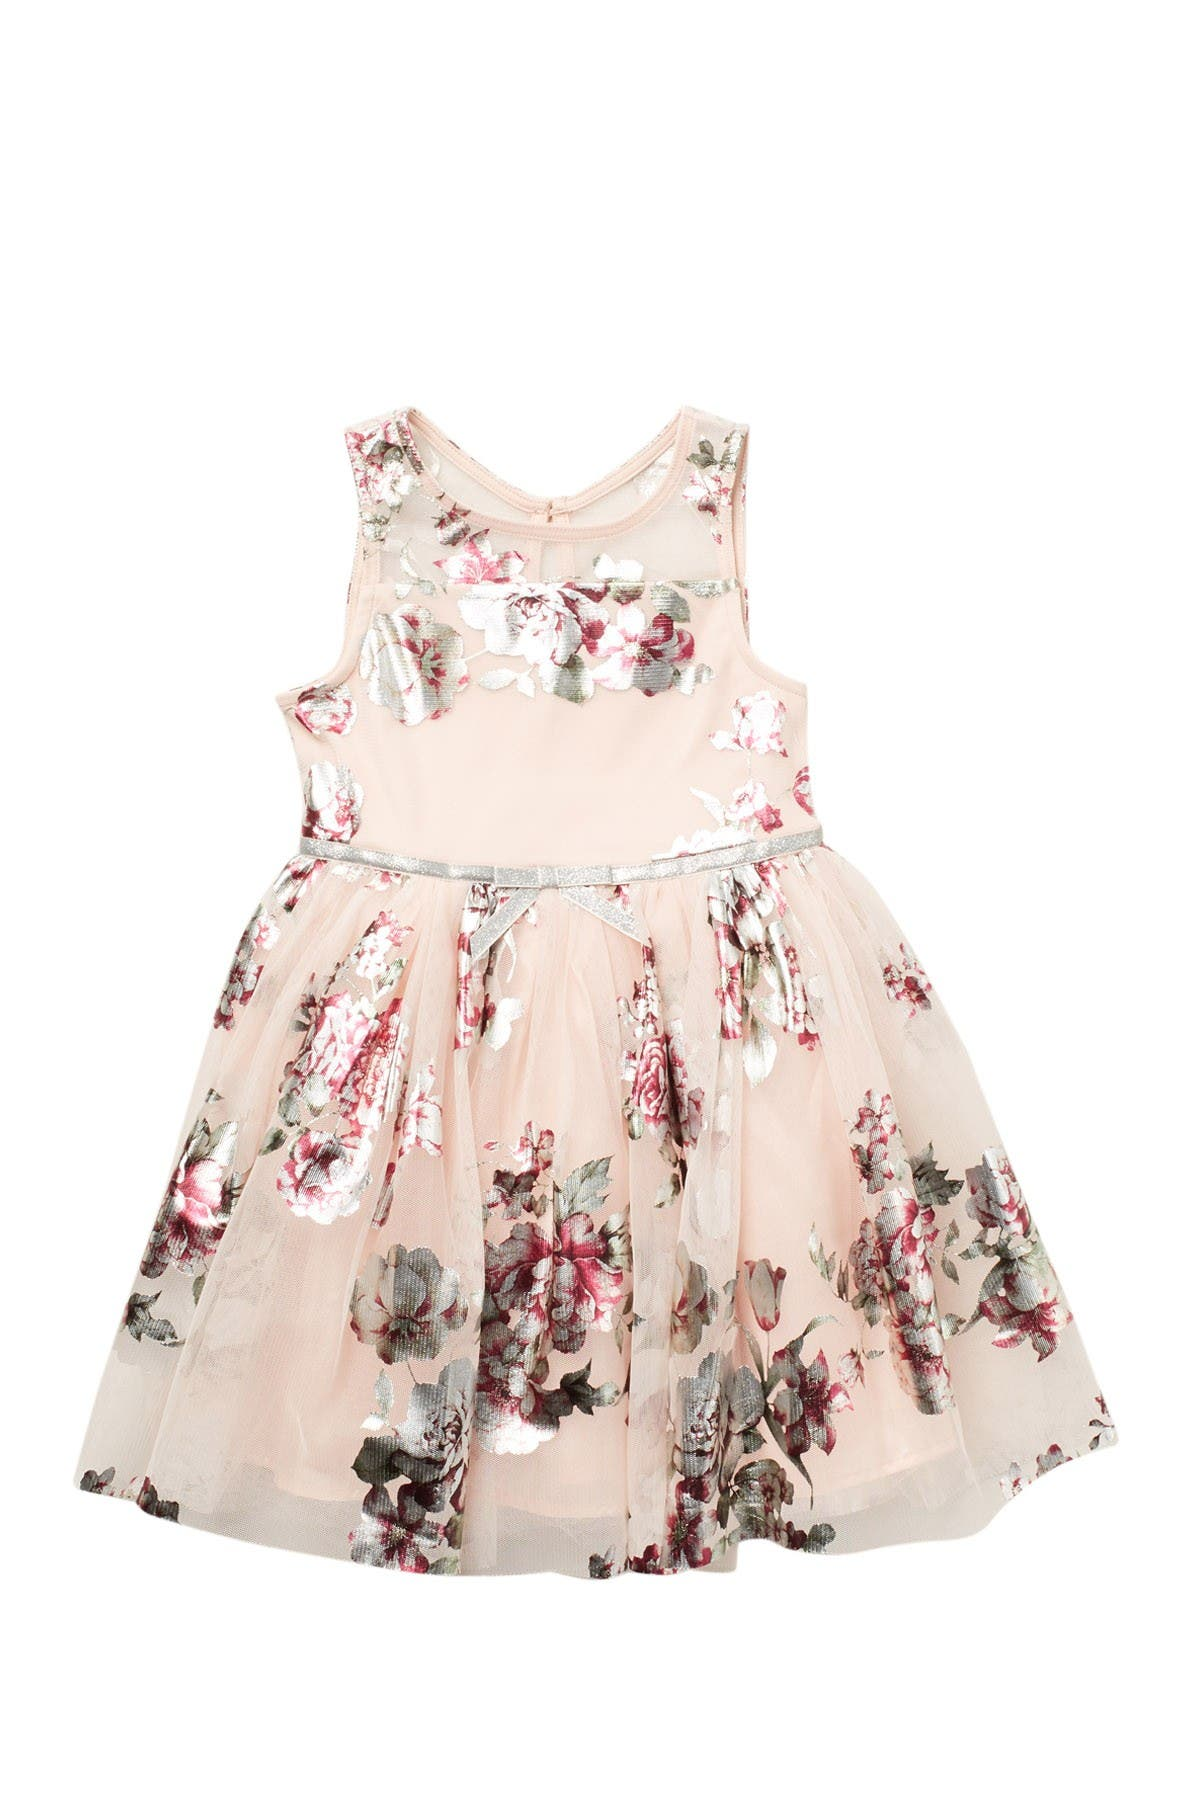 Image of Zunie Sleeveless Floral Party Dress